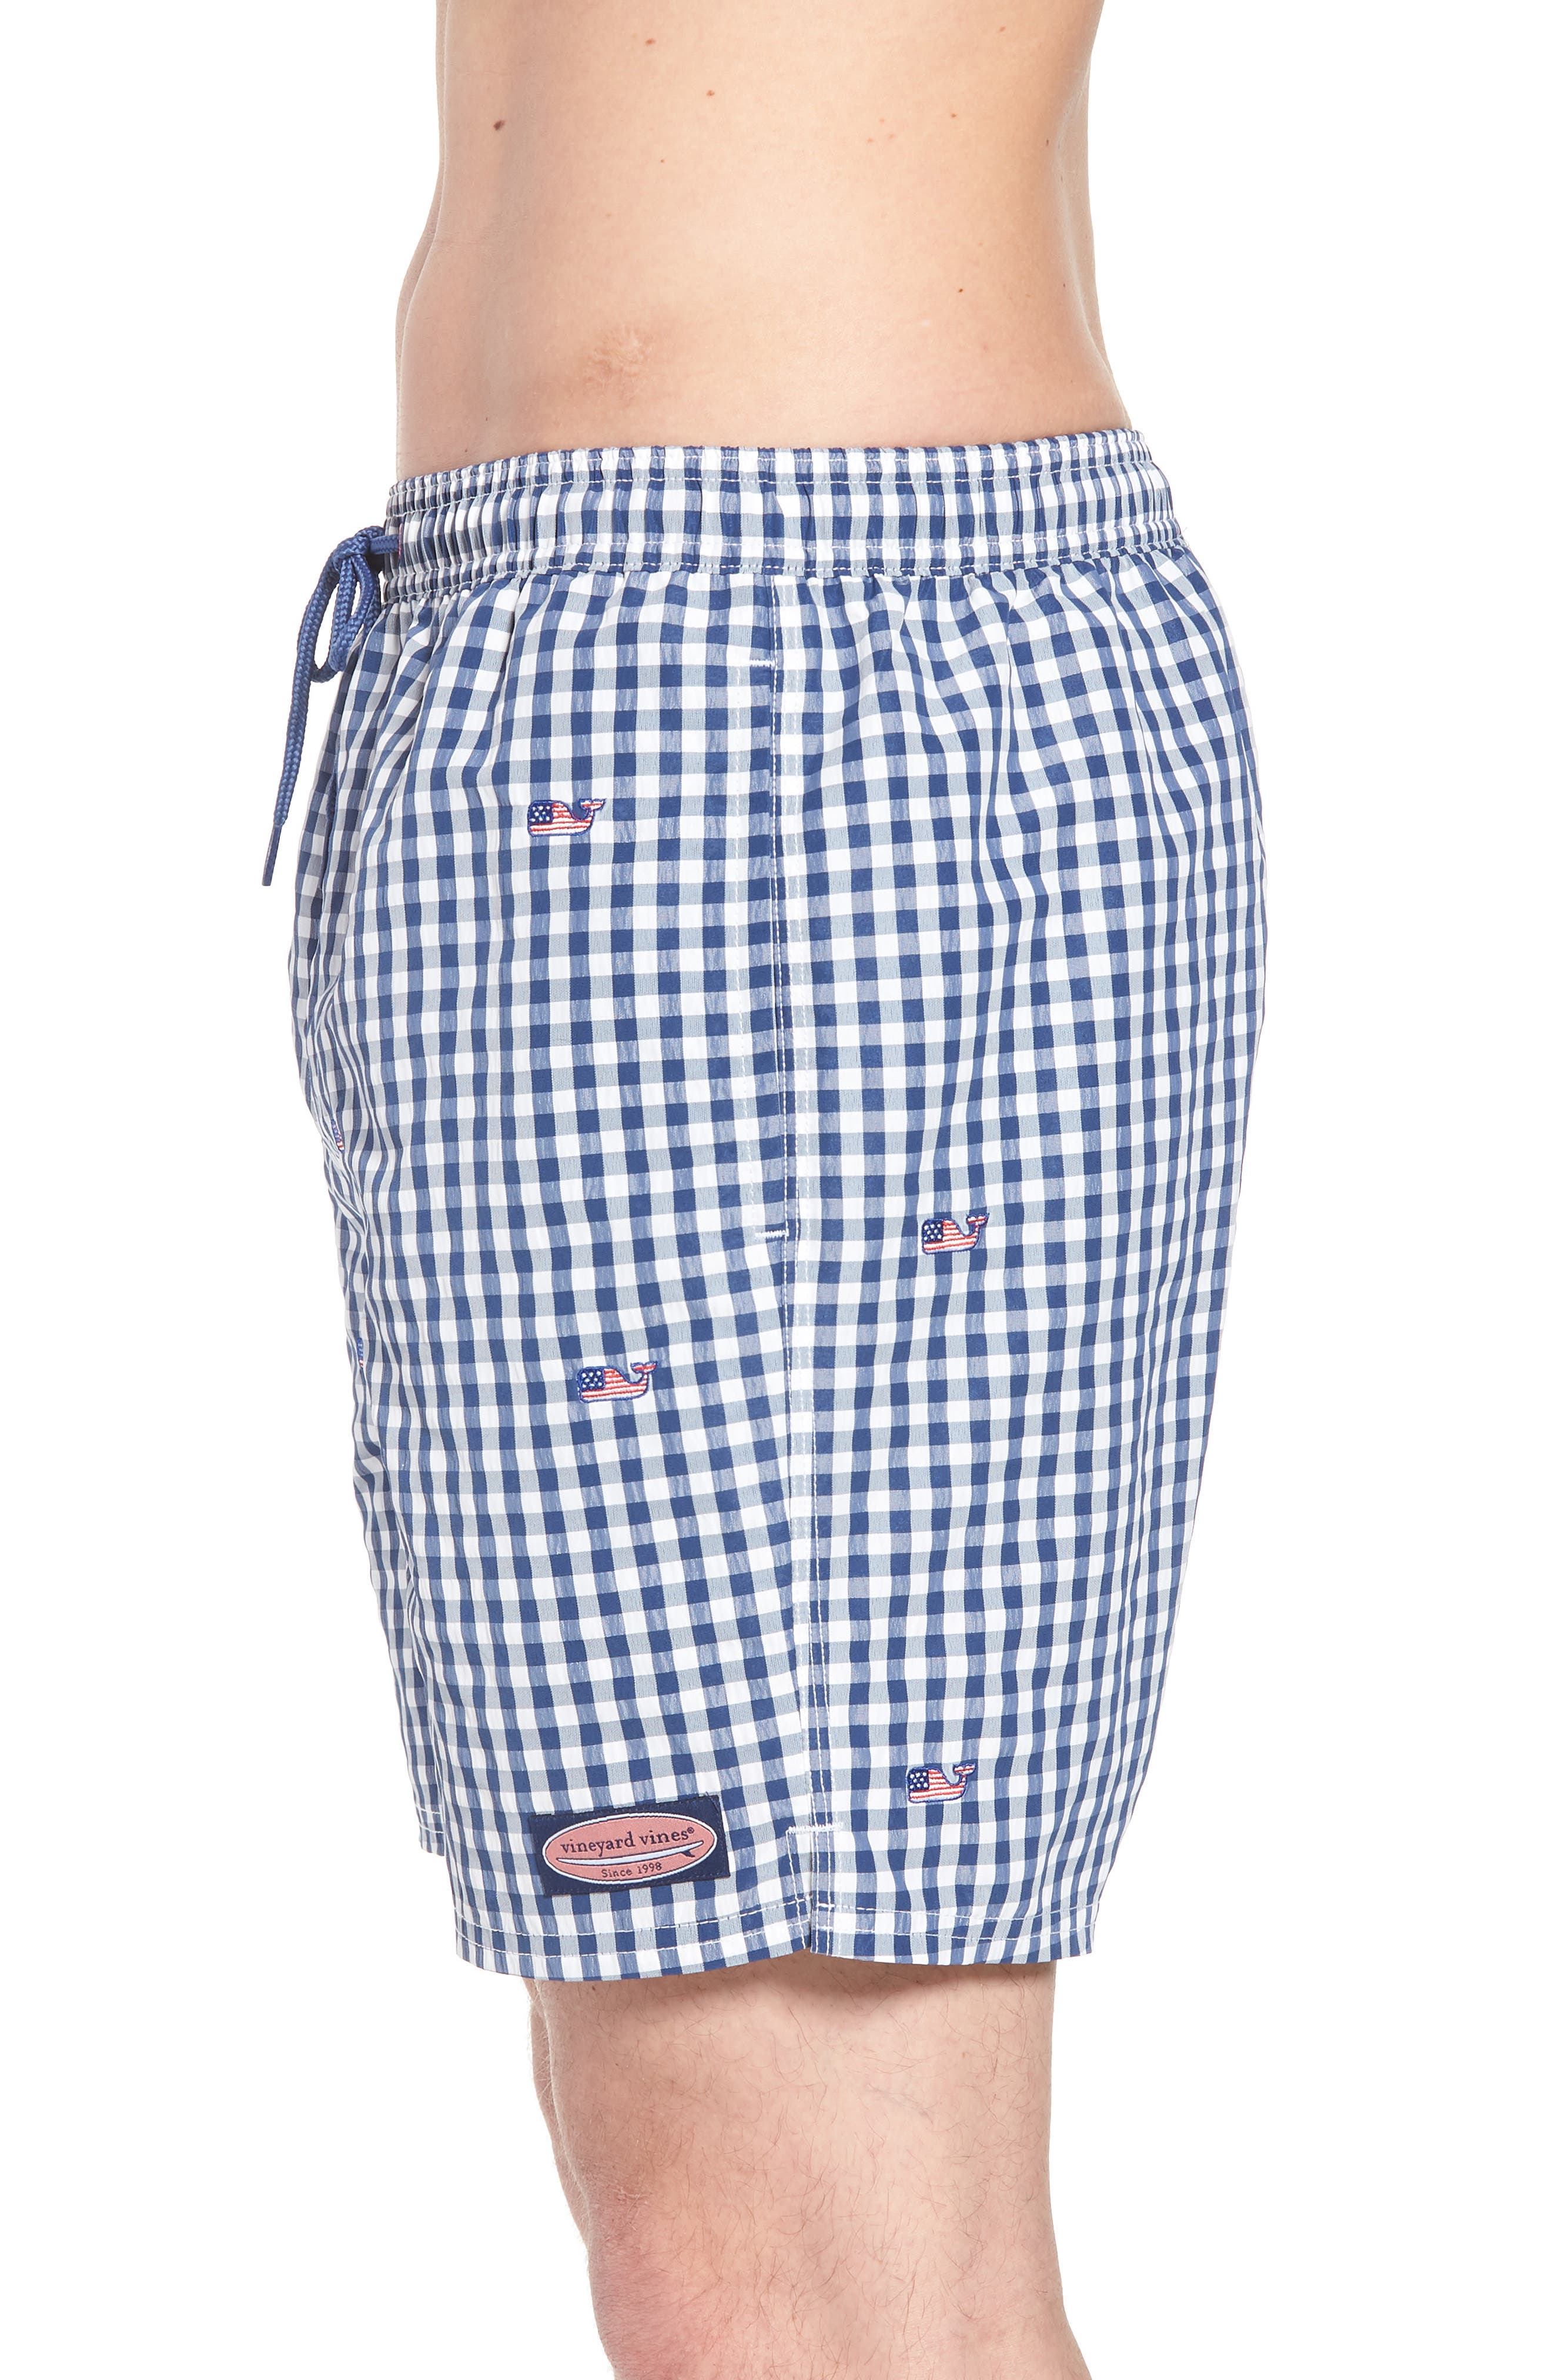 VINEYARD VINES,                             Chappy Flag Whale Embroidered Gingham Swim Trunks,                             Alternate thumbnail 3, color,                             461